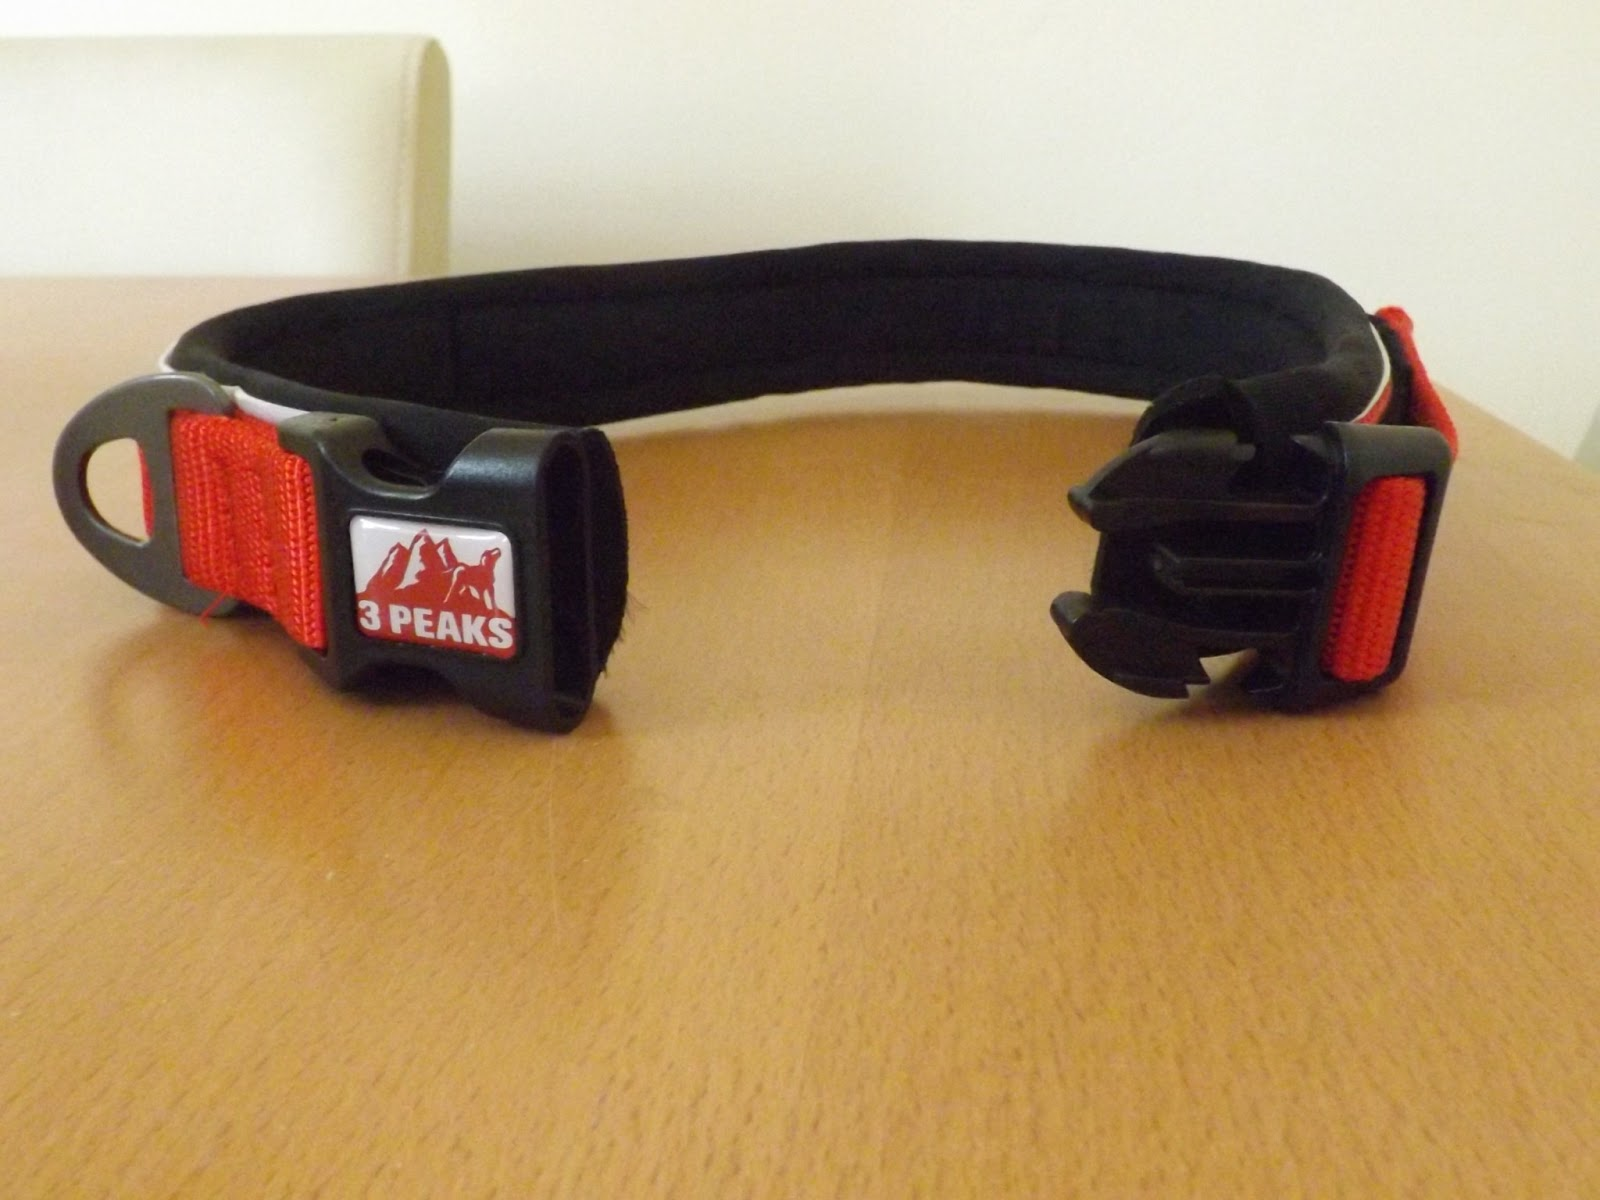 del 39 s adventures a uk rottweiler dog blog three peaks dog collar review